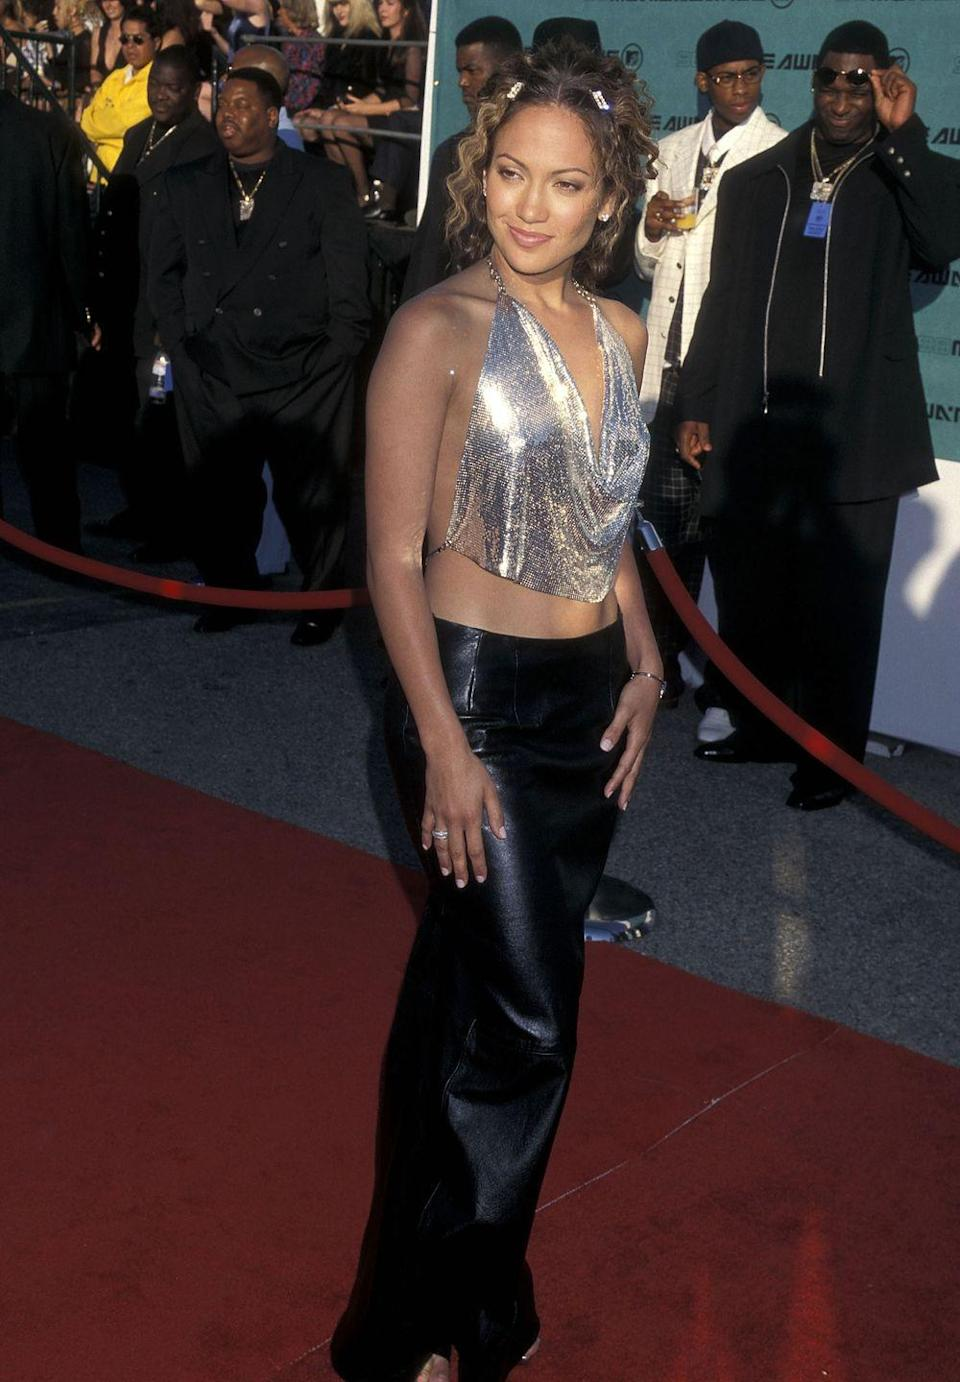 """<p>Surprise! Another crop top! This time in slinky chainmail, as seen here on J.Lo at the VMAs. Also noteworthy? Those hair barrettes, which, in case you haven't heard, are <a href=""""https://www.cosmopolitan.com/style-beauty/fashion/a25834946/best-hair-barrettes-shop-clips-accessories/"""" rel=""""nofollow noopener"""" target=""""_blank"""" data-ylk=""""slk:totally making a comeback"""" class=""""link rapid-noclick-resp"""">totally making a comeback</a>. </p>"""